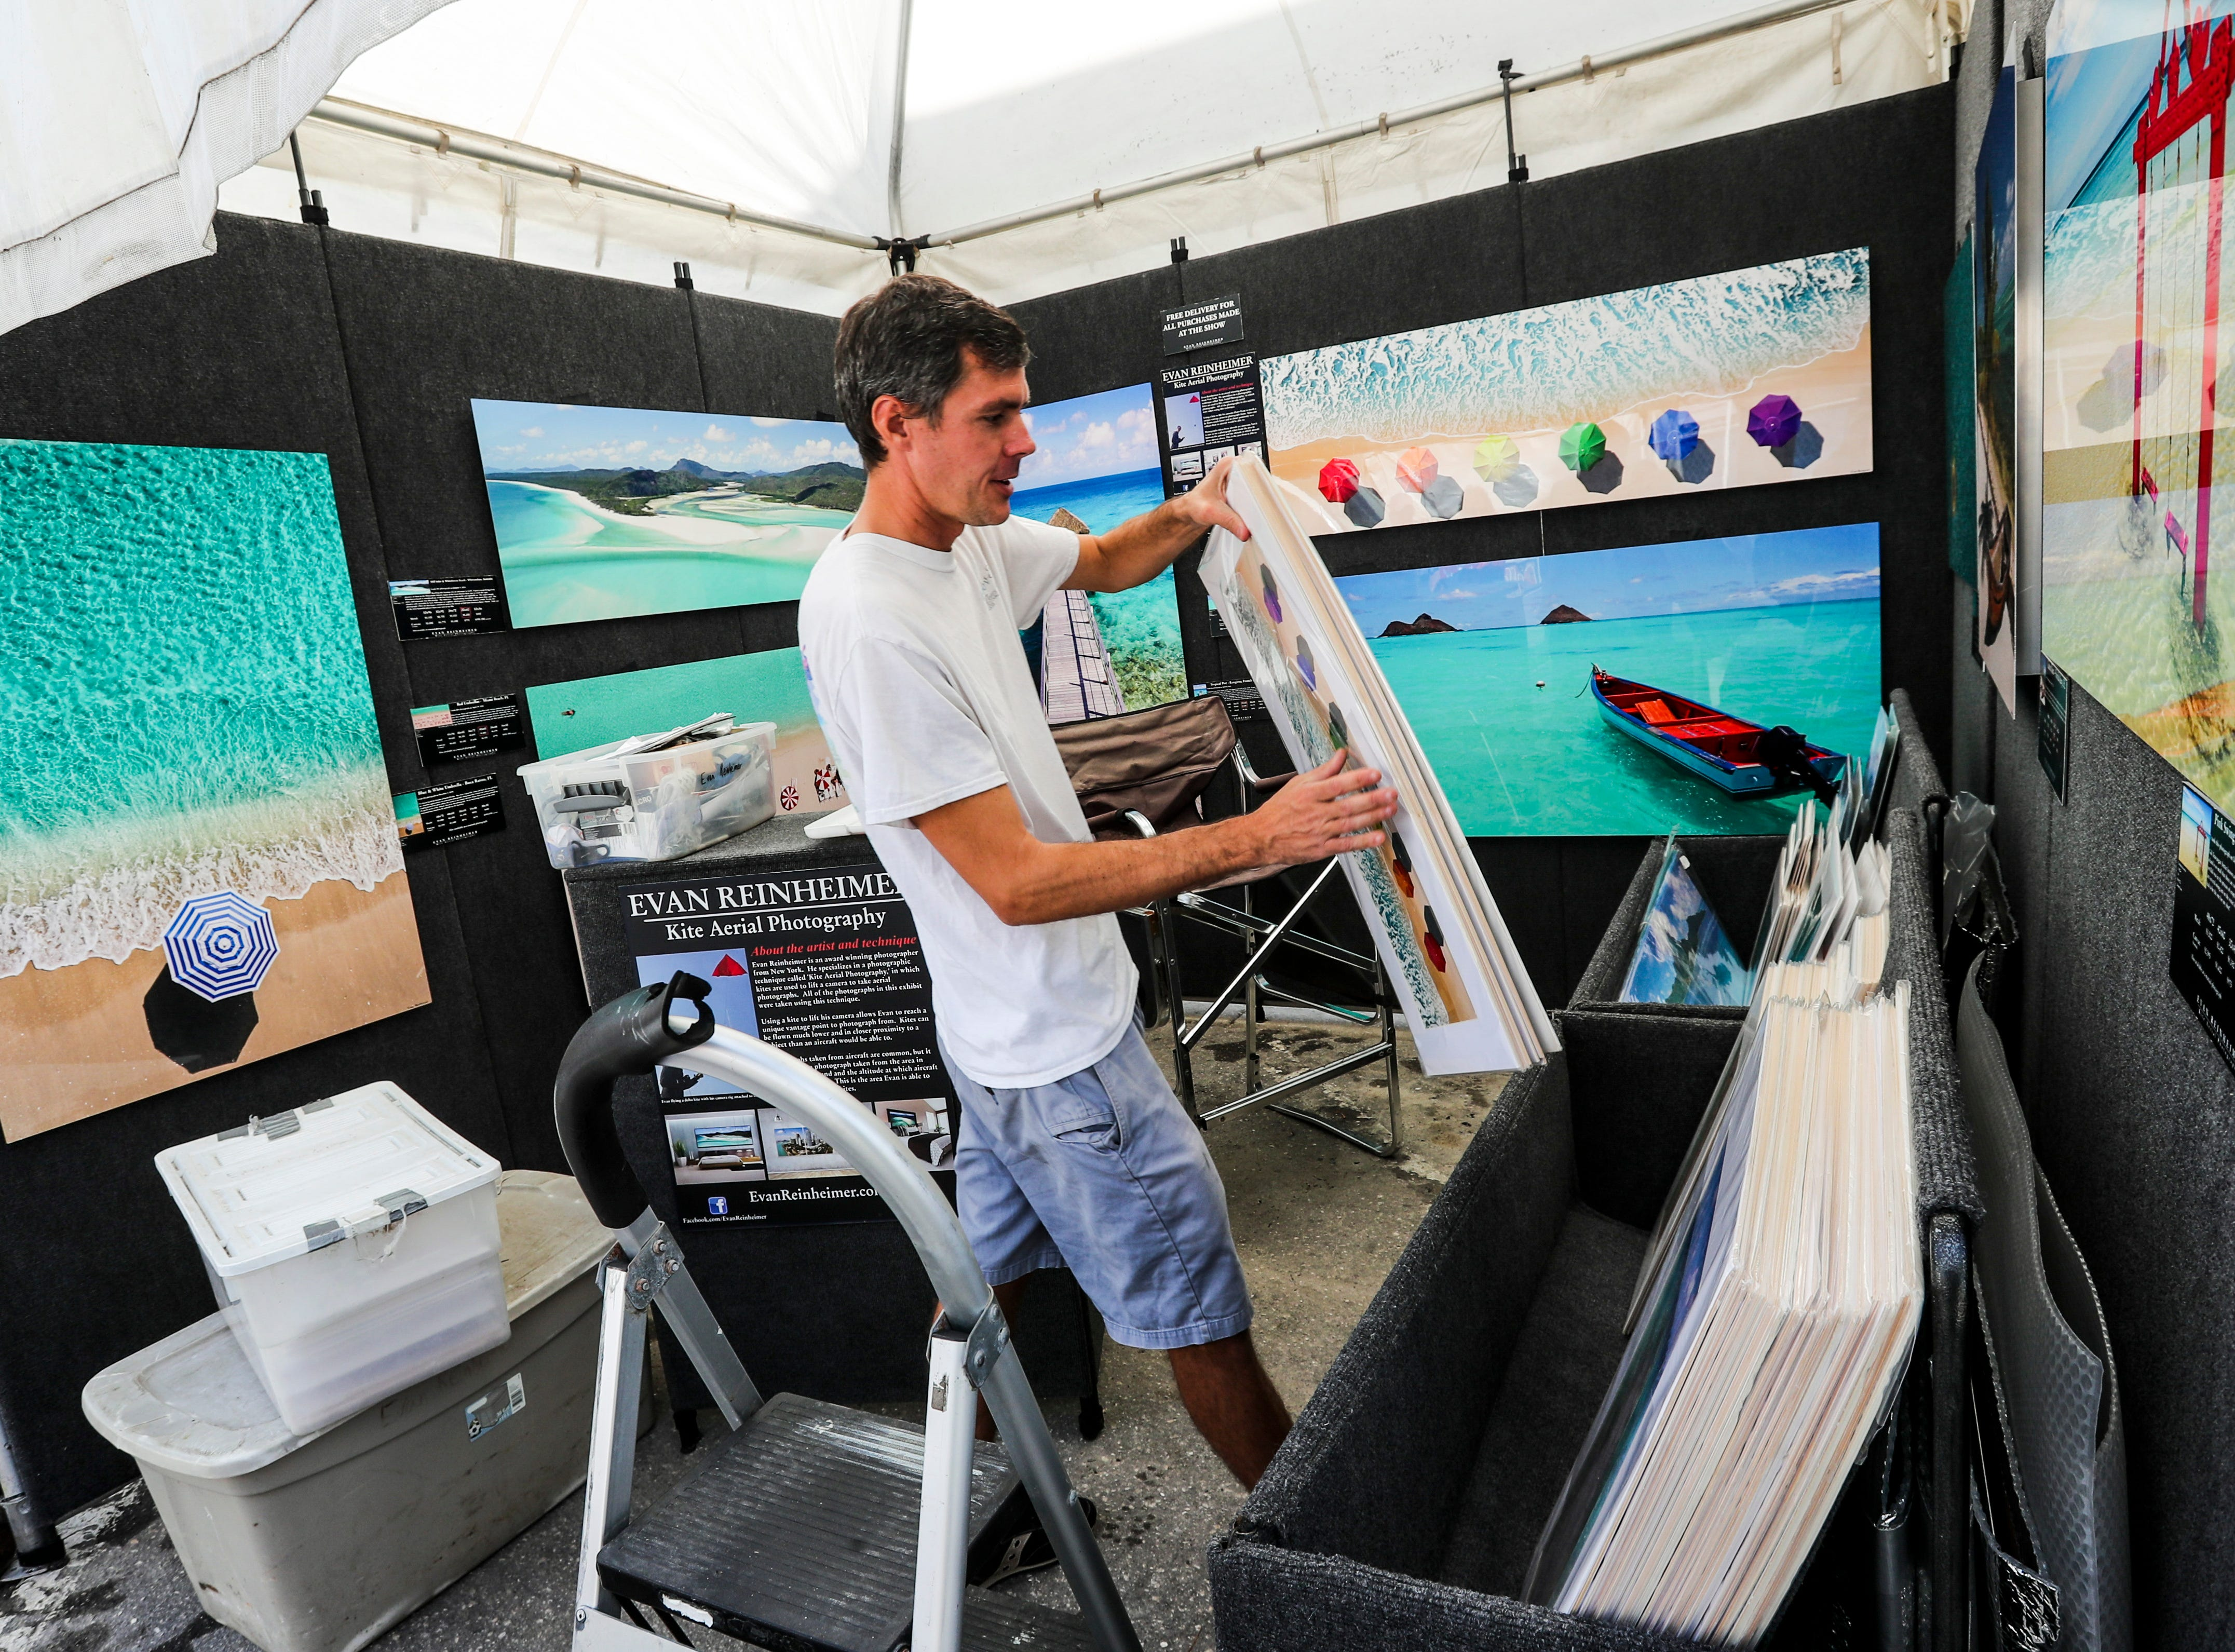 """Evan Reinheimer , of New York, specializes in """"Kite Aerial Photography"""". He sets up his booth Friday morning. Artists spent the morning setting up for ArtFest Fort Myers downtown on Edwards Drive. The festival goes all weekend."""